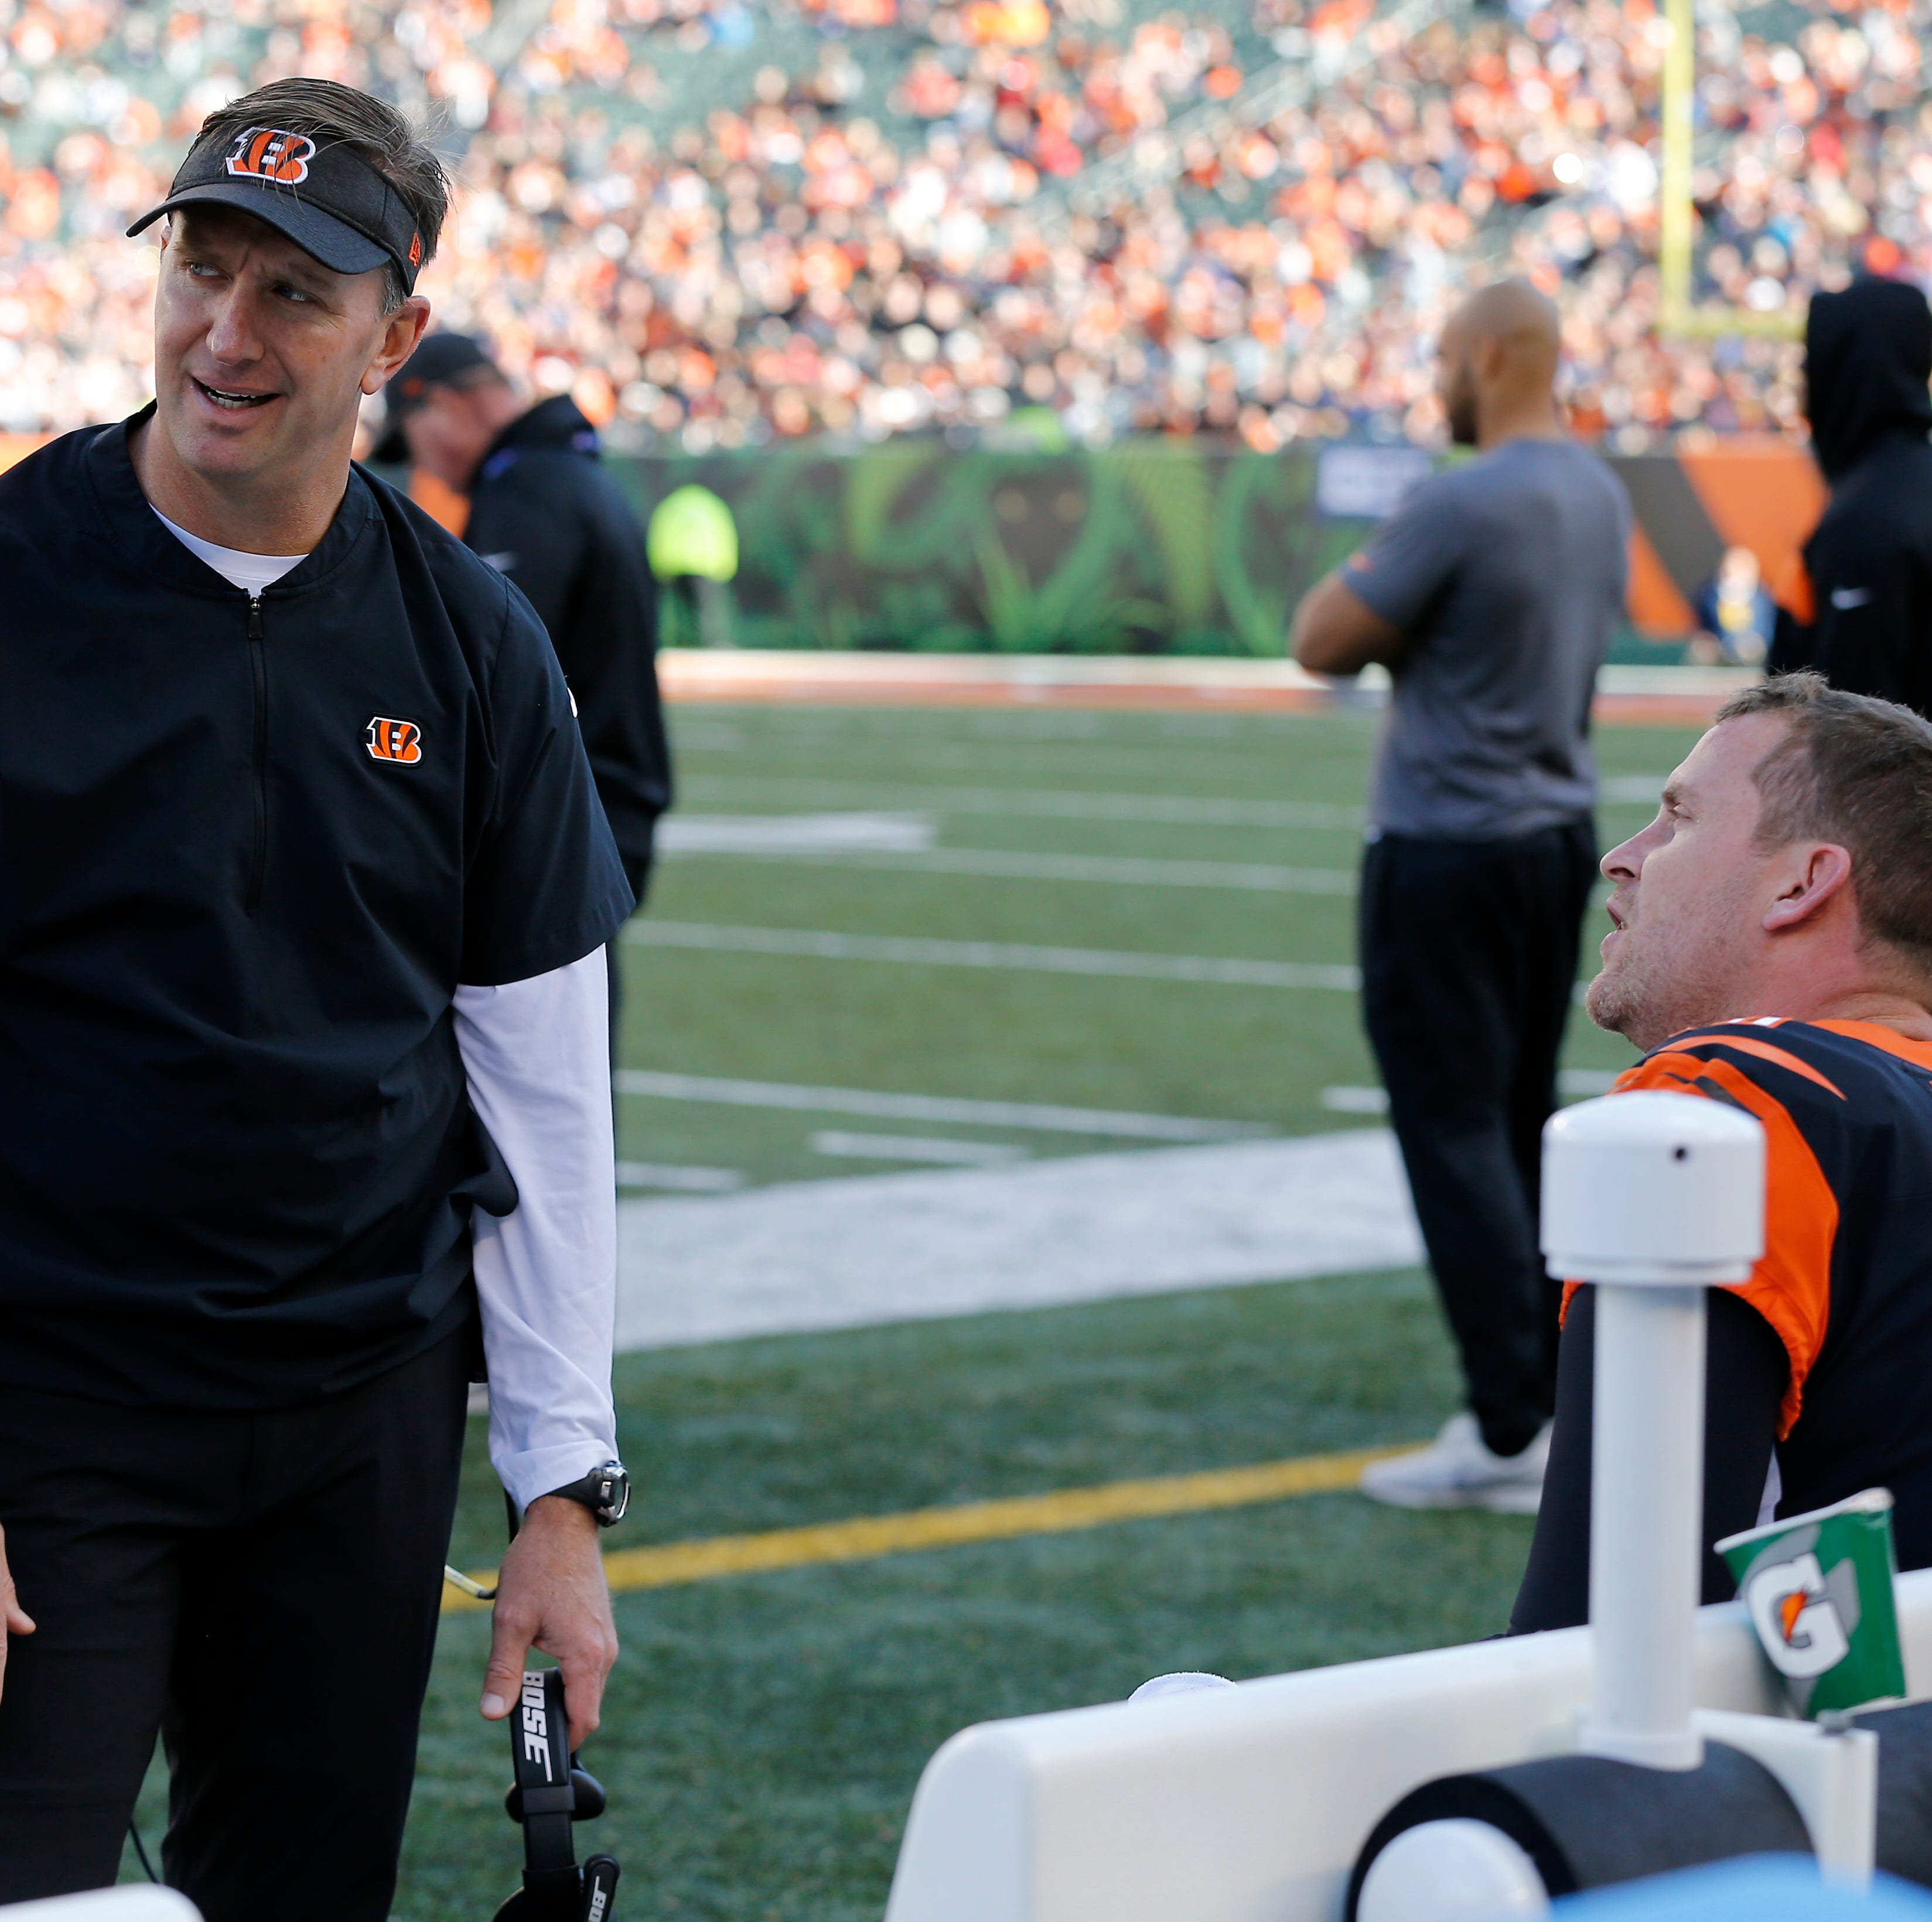 Cincinnati Bengals 2019: Holdovers from Marvin Lewis 'all want things to be sparked again'